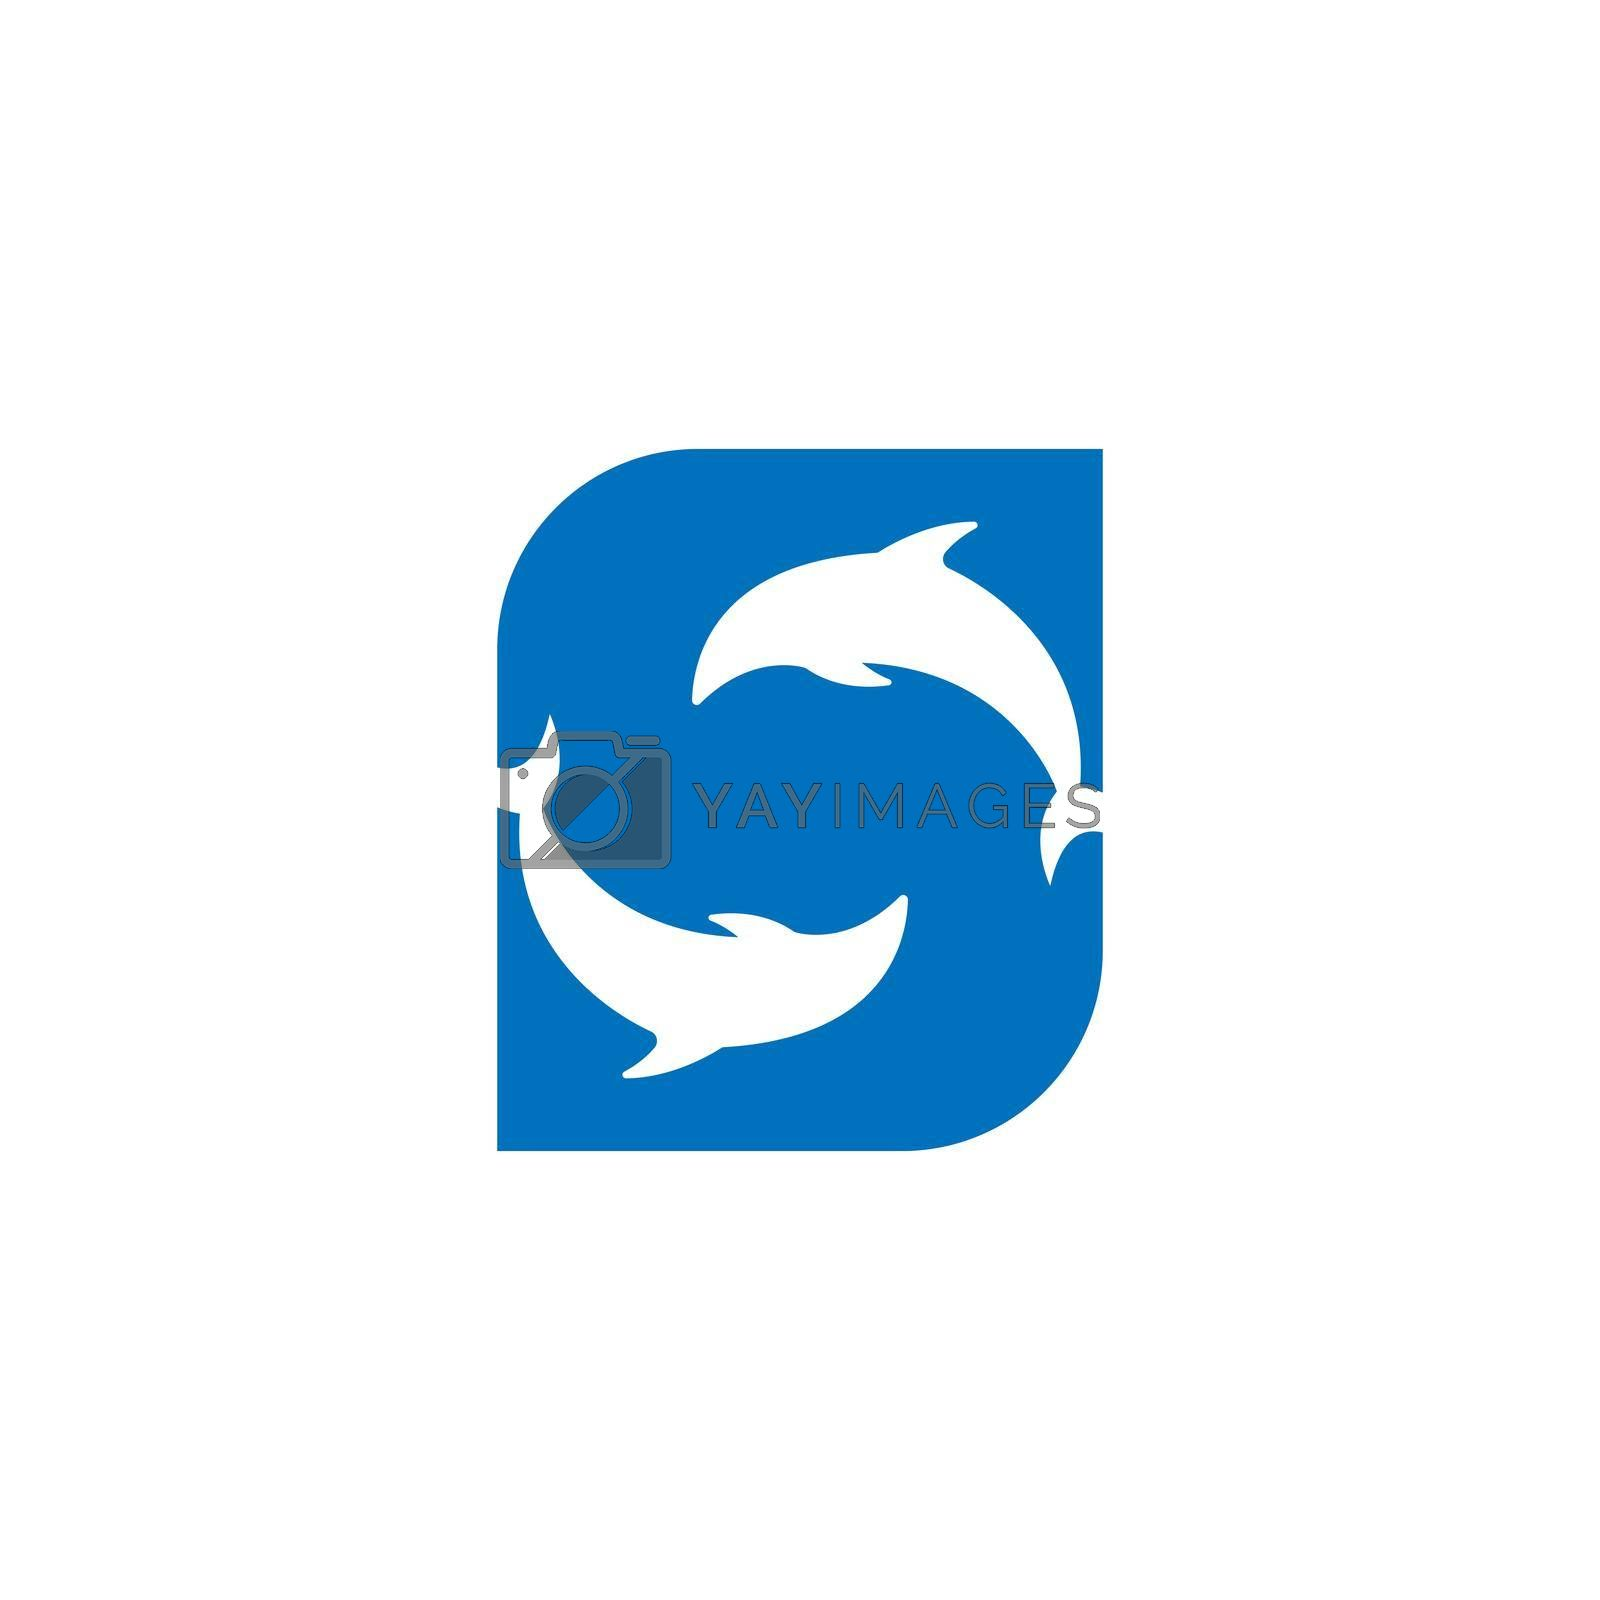 Dolphin with Letter S logo icon design concept vector template illustration